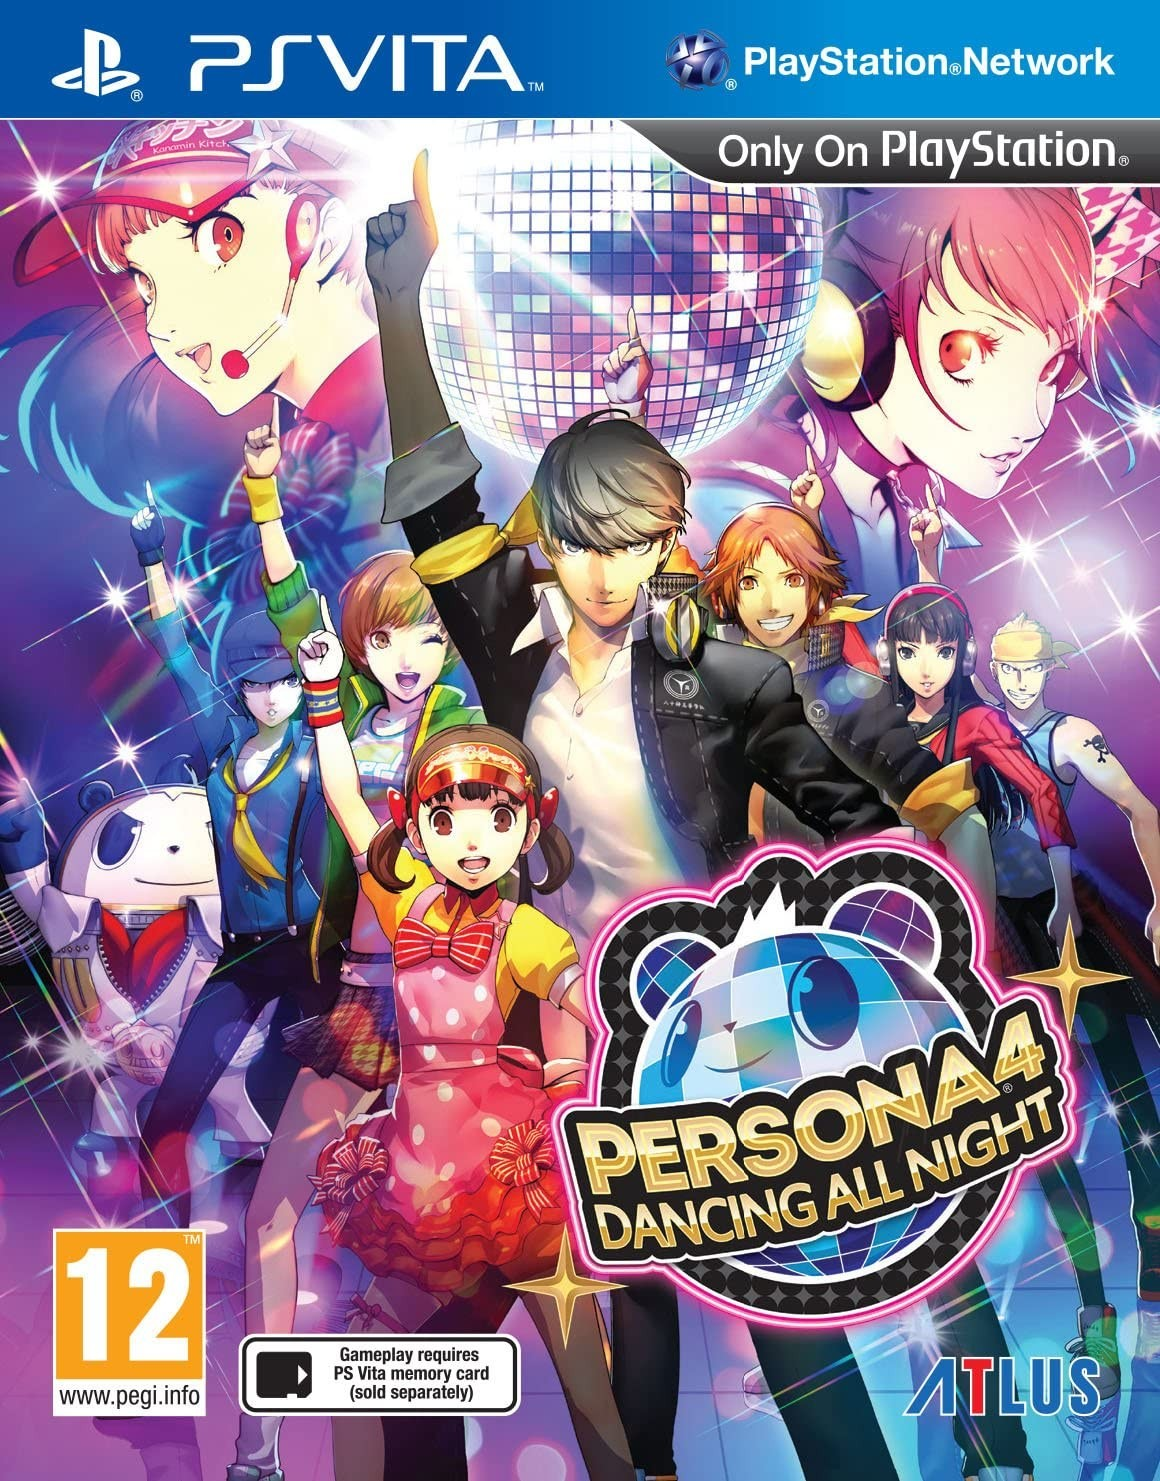 Persona 4: Dancing All Night PSV